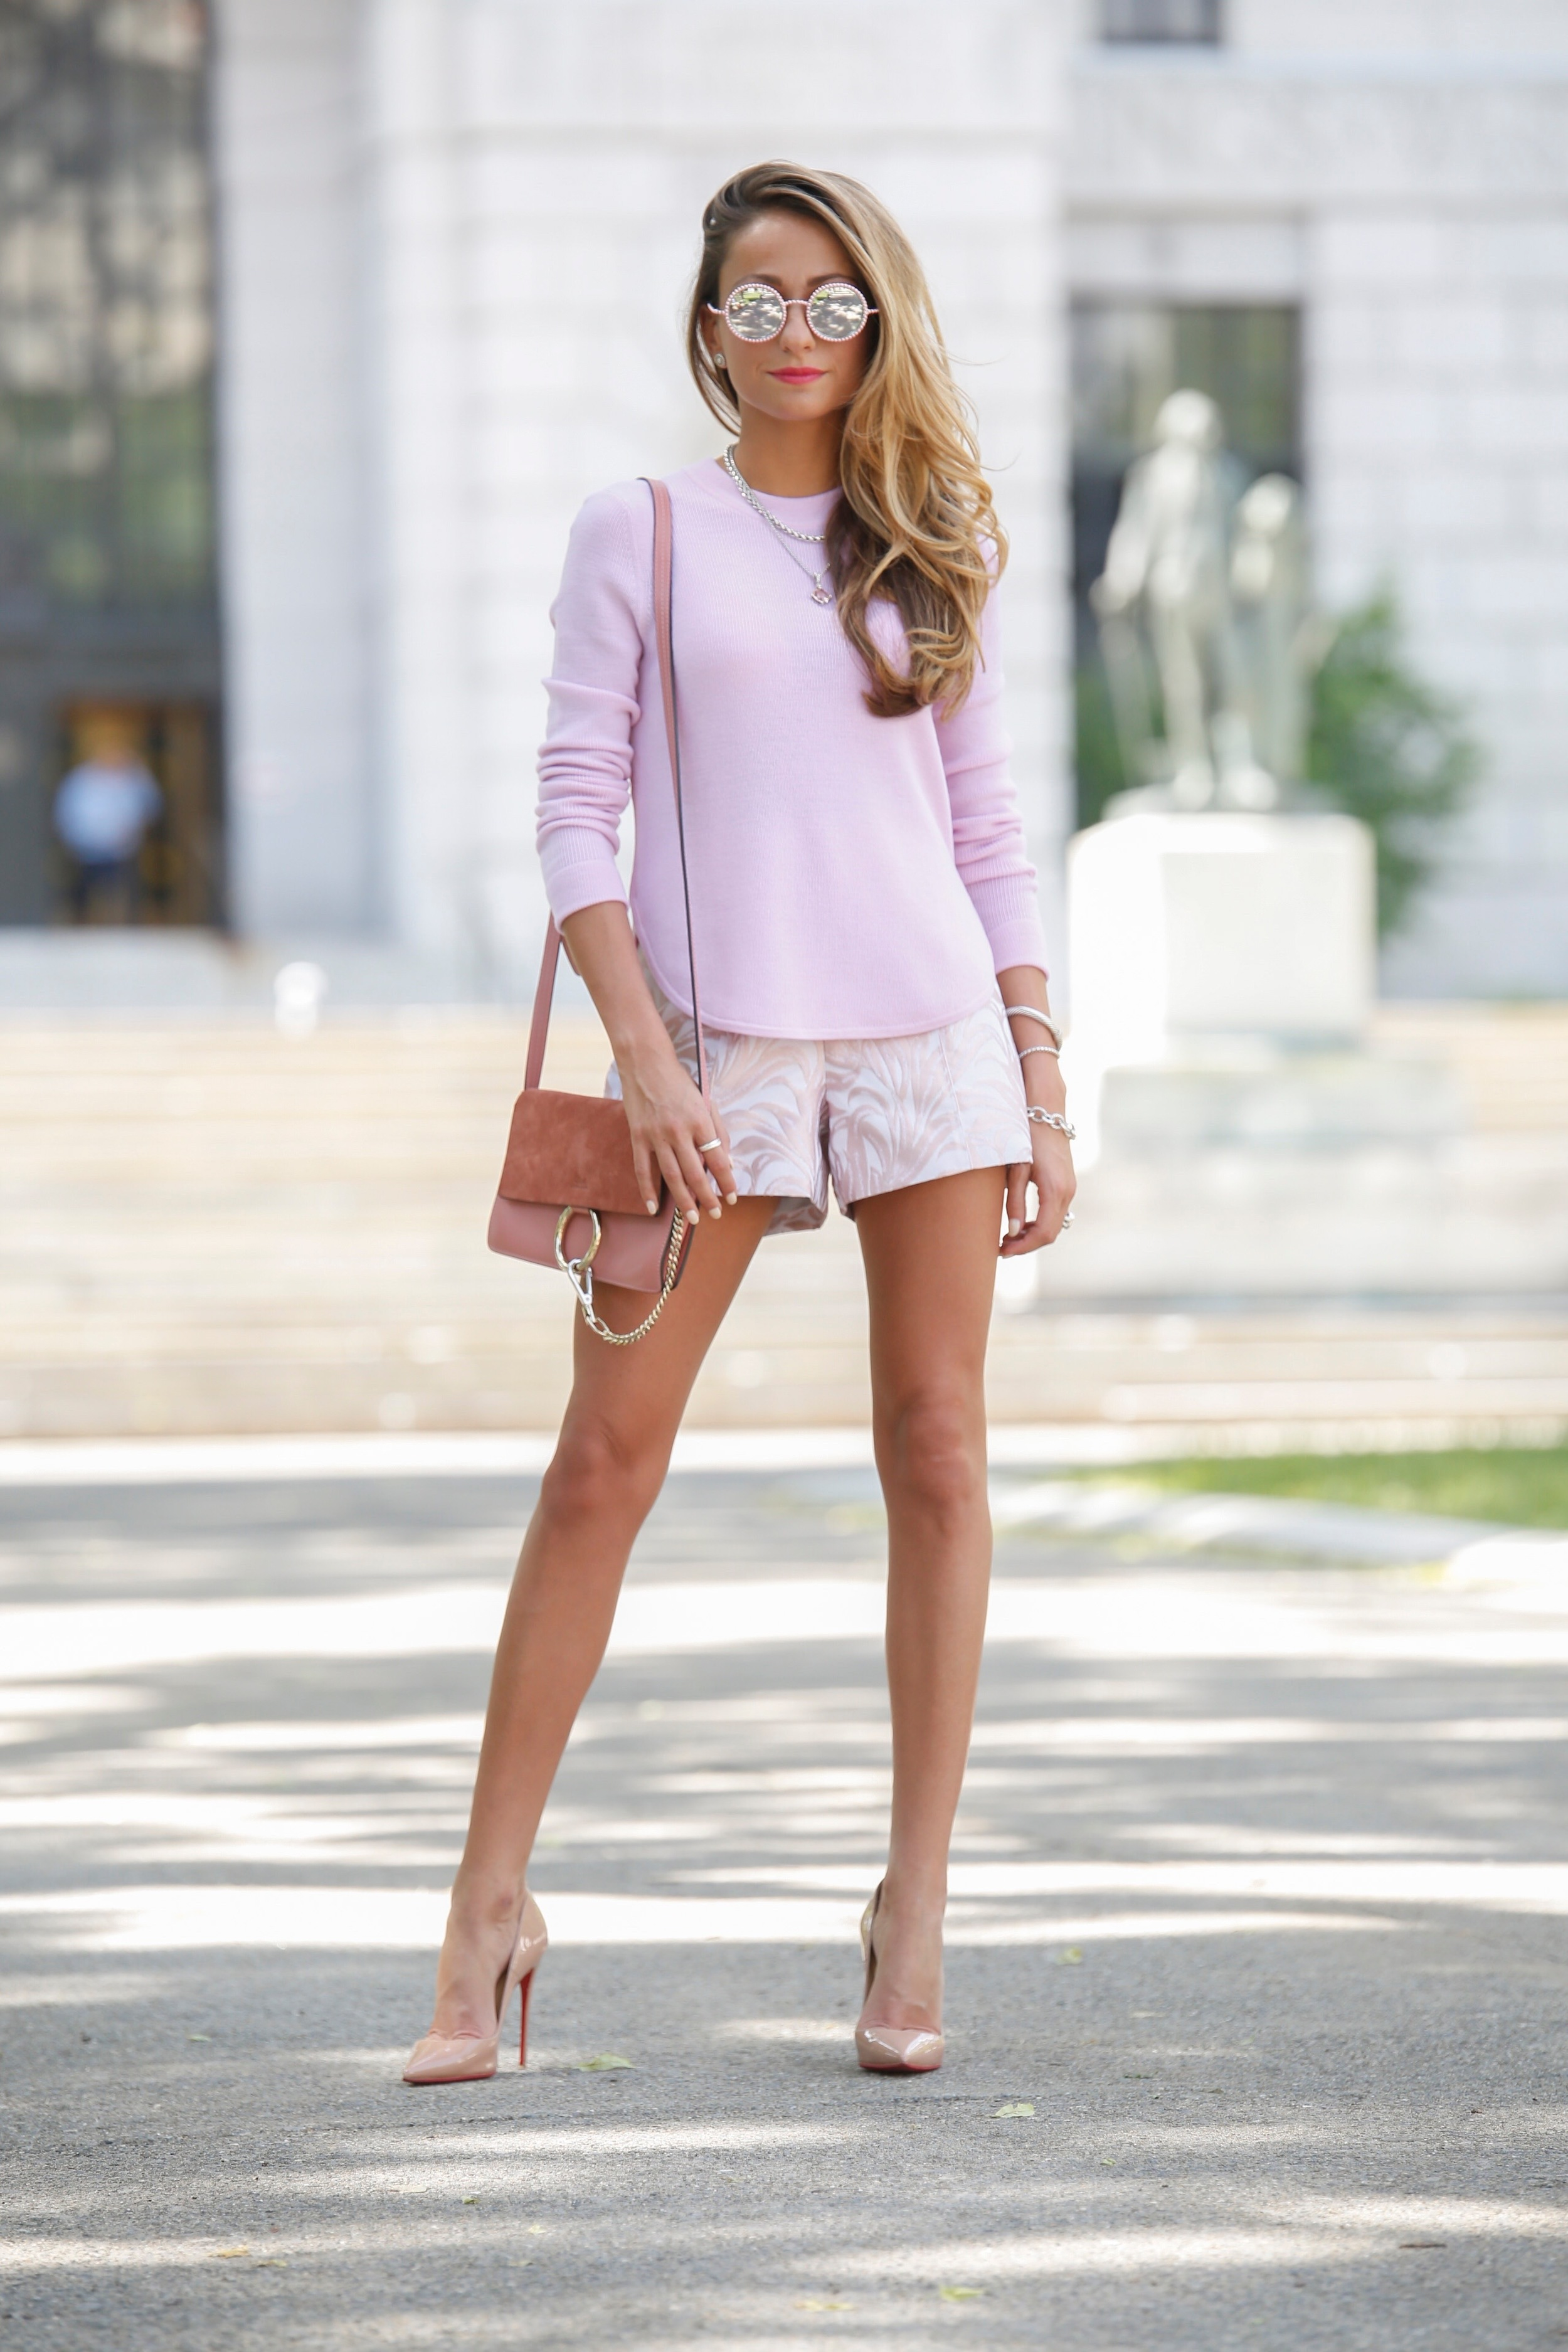 pink chanel sunglasses paired with an A.L.C. sweater and pink jacquard shorts exclusive for Intermix